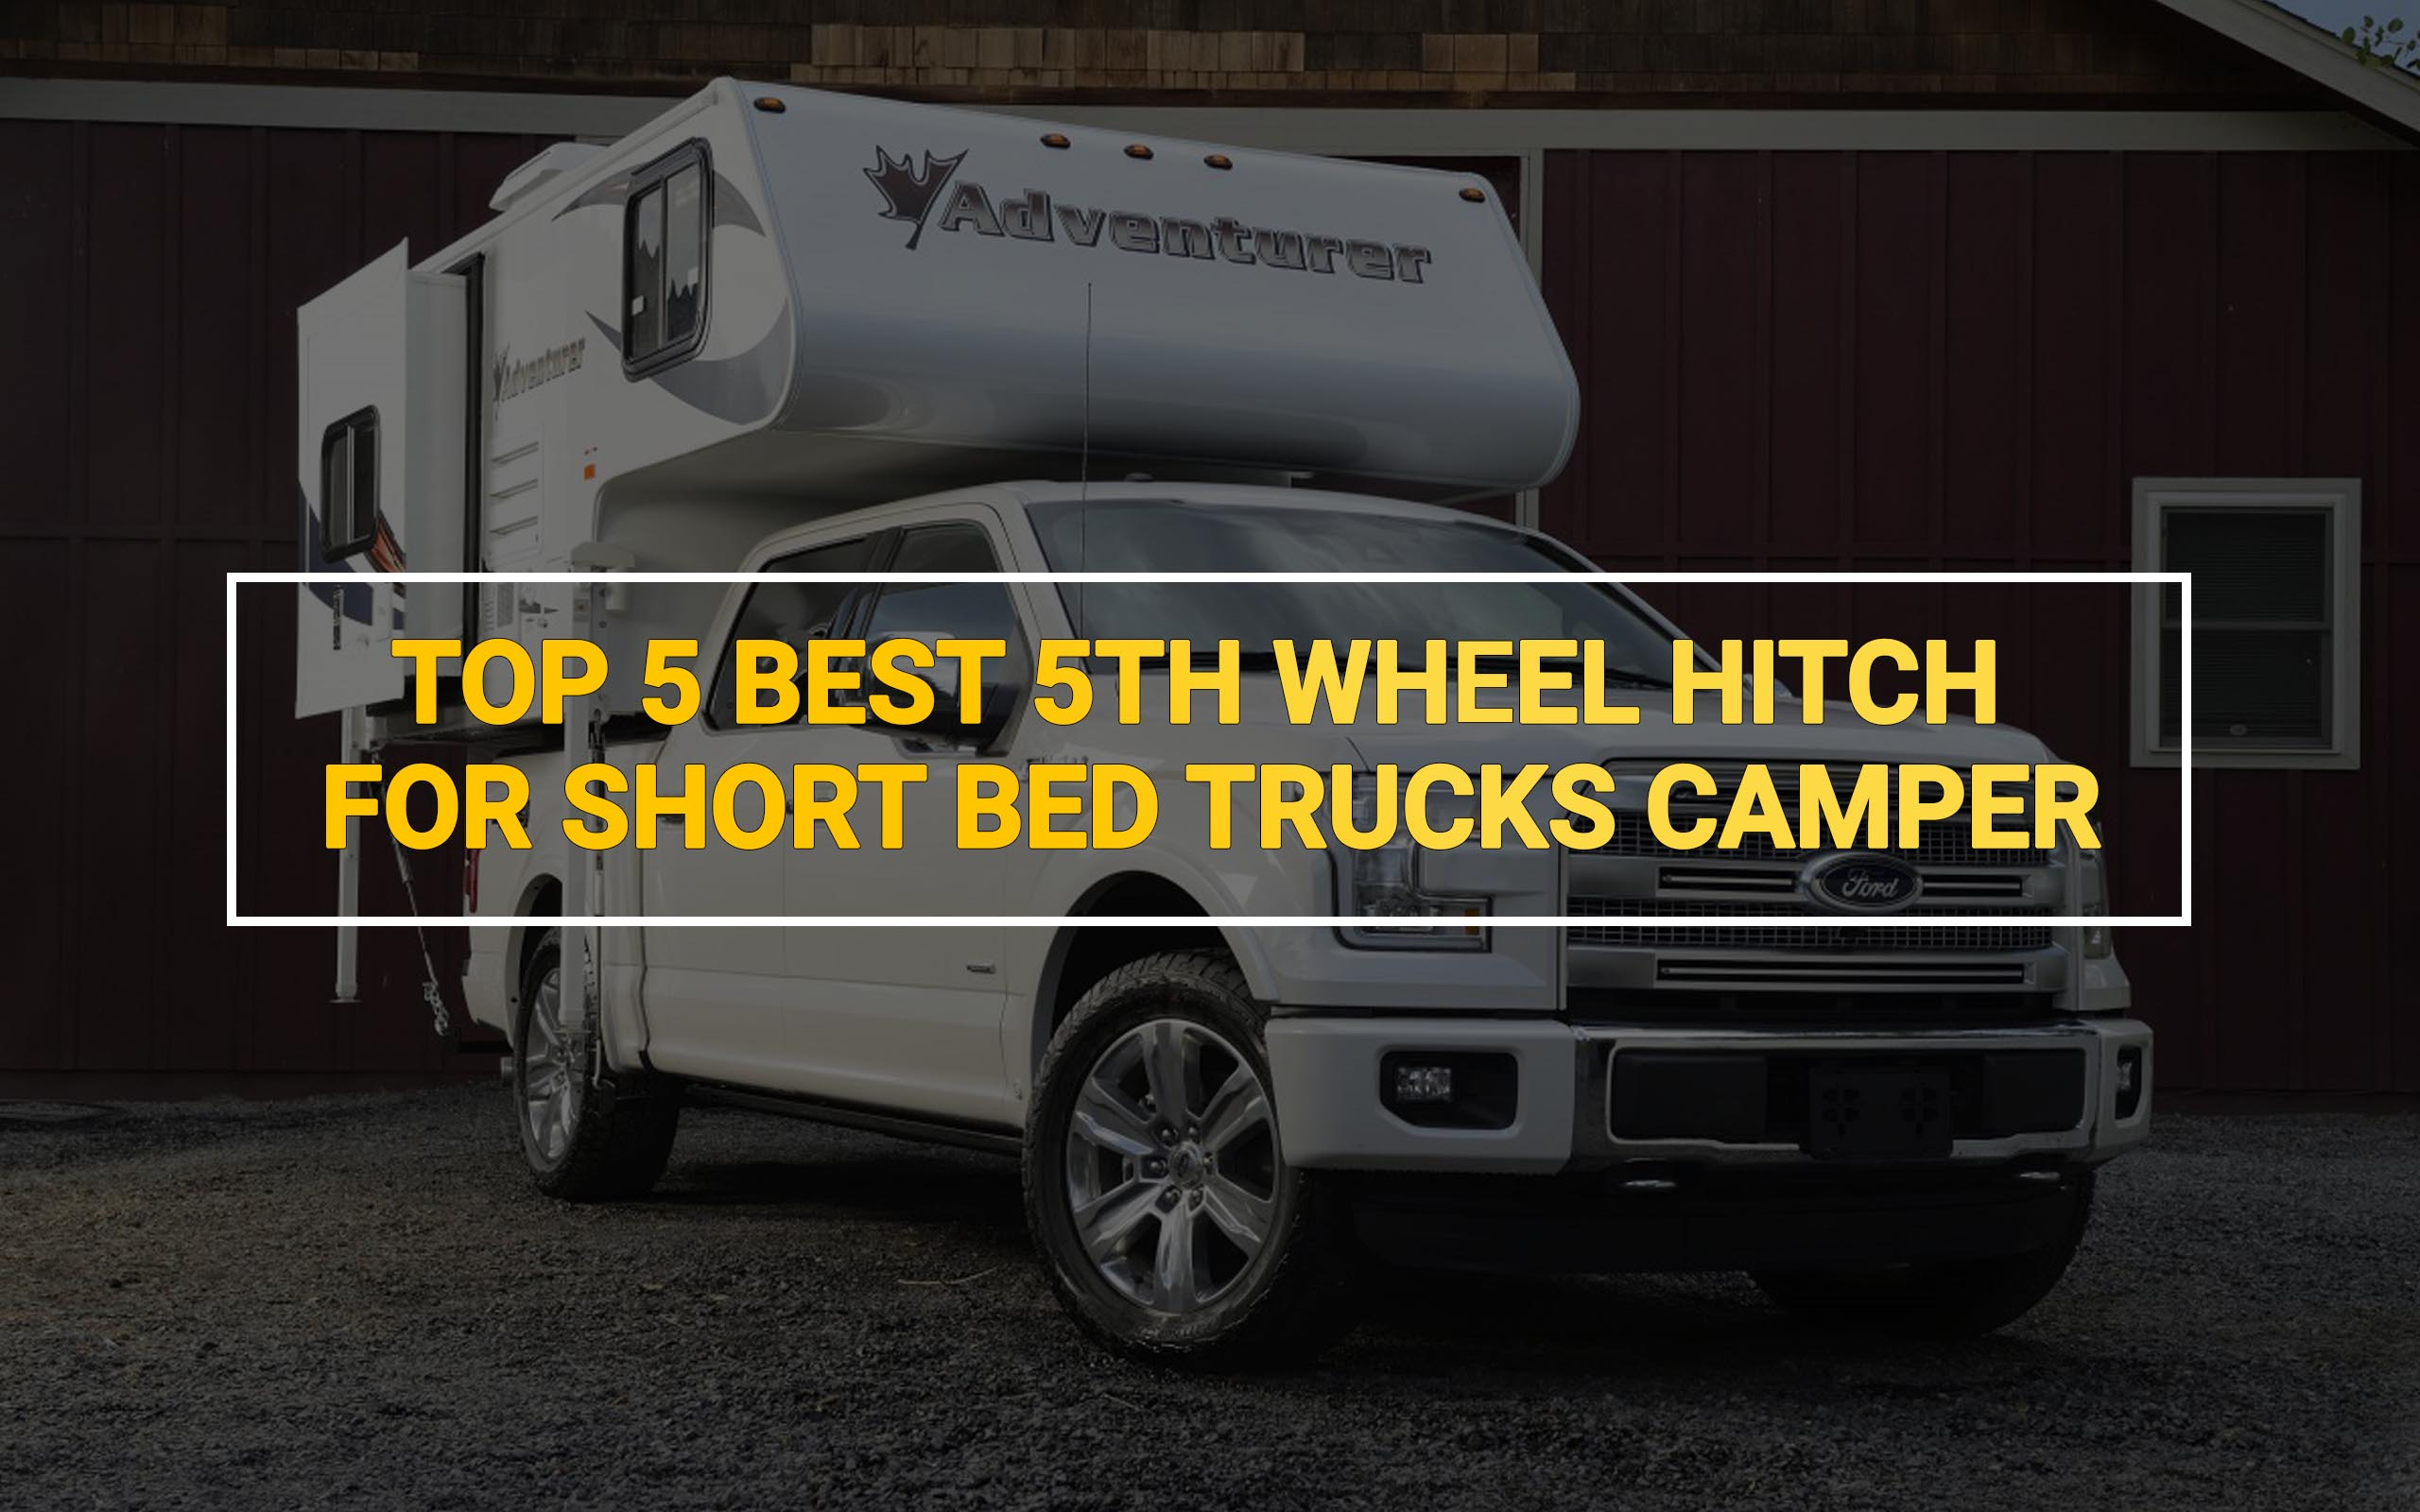 Top 5 Best Fifth Wheel Hitch For Short Bed Trucks Camper